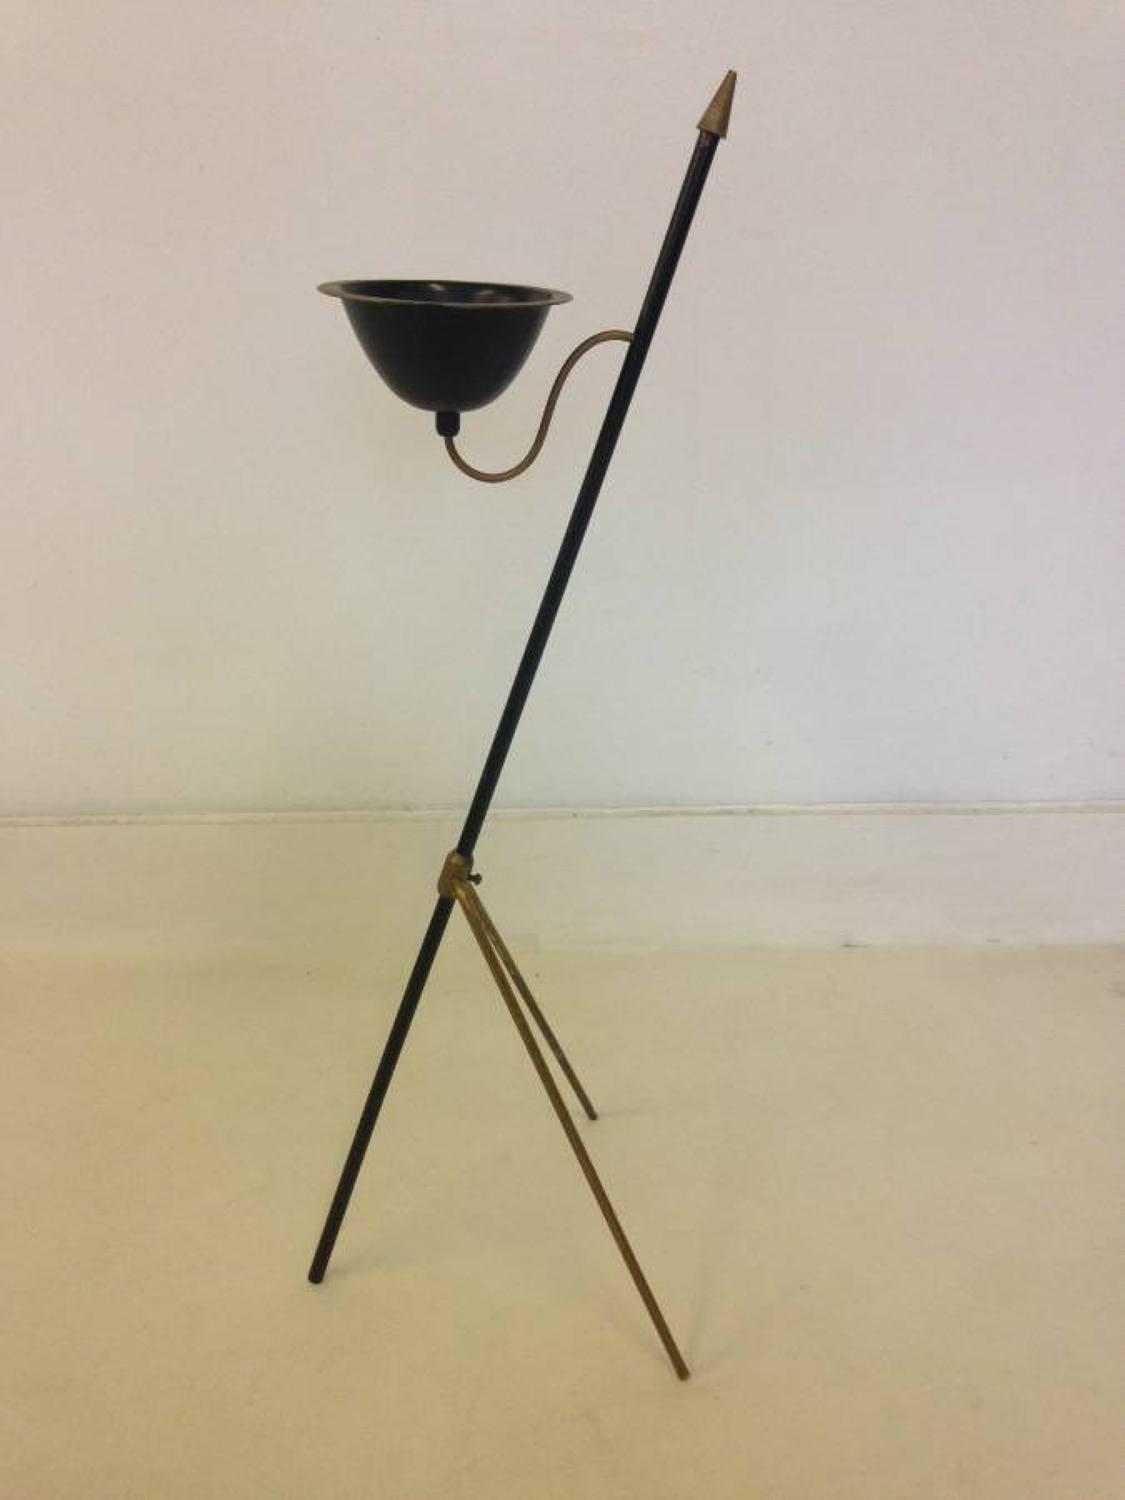 Brass and steel floor standing dish or ashtray